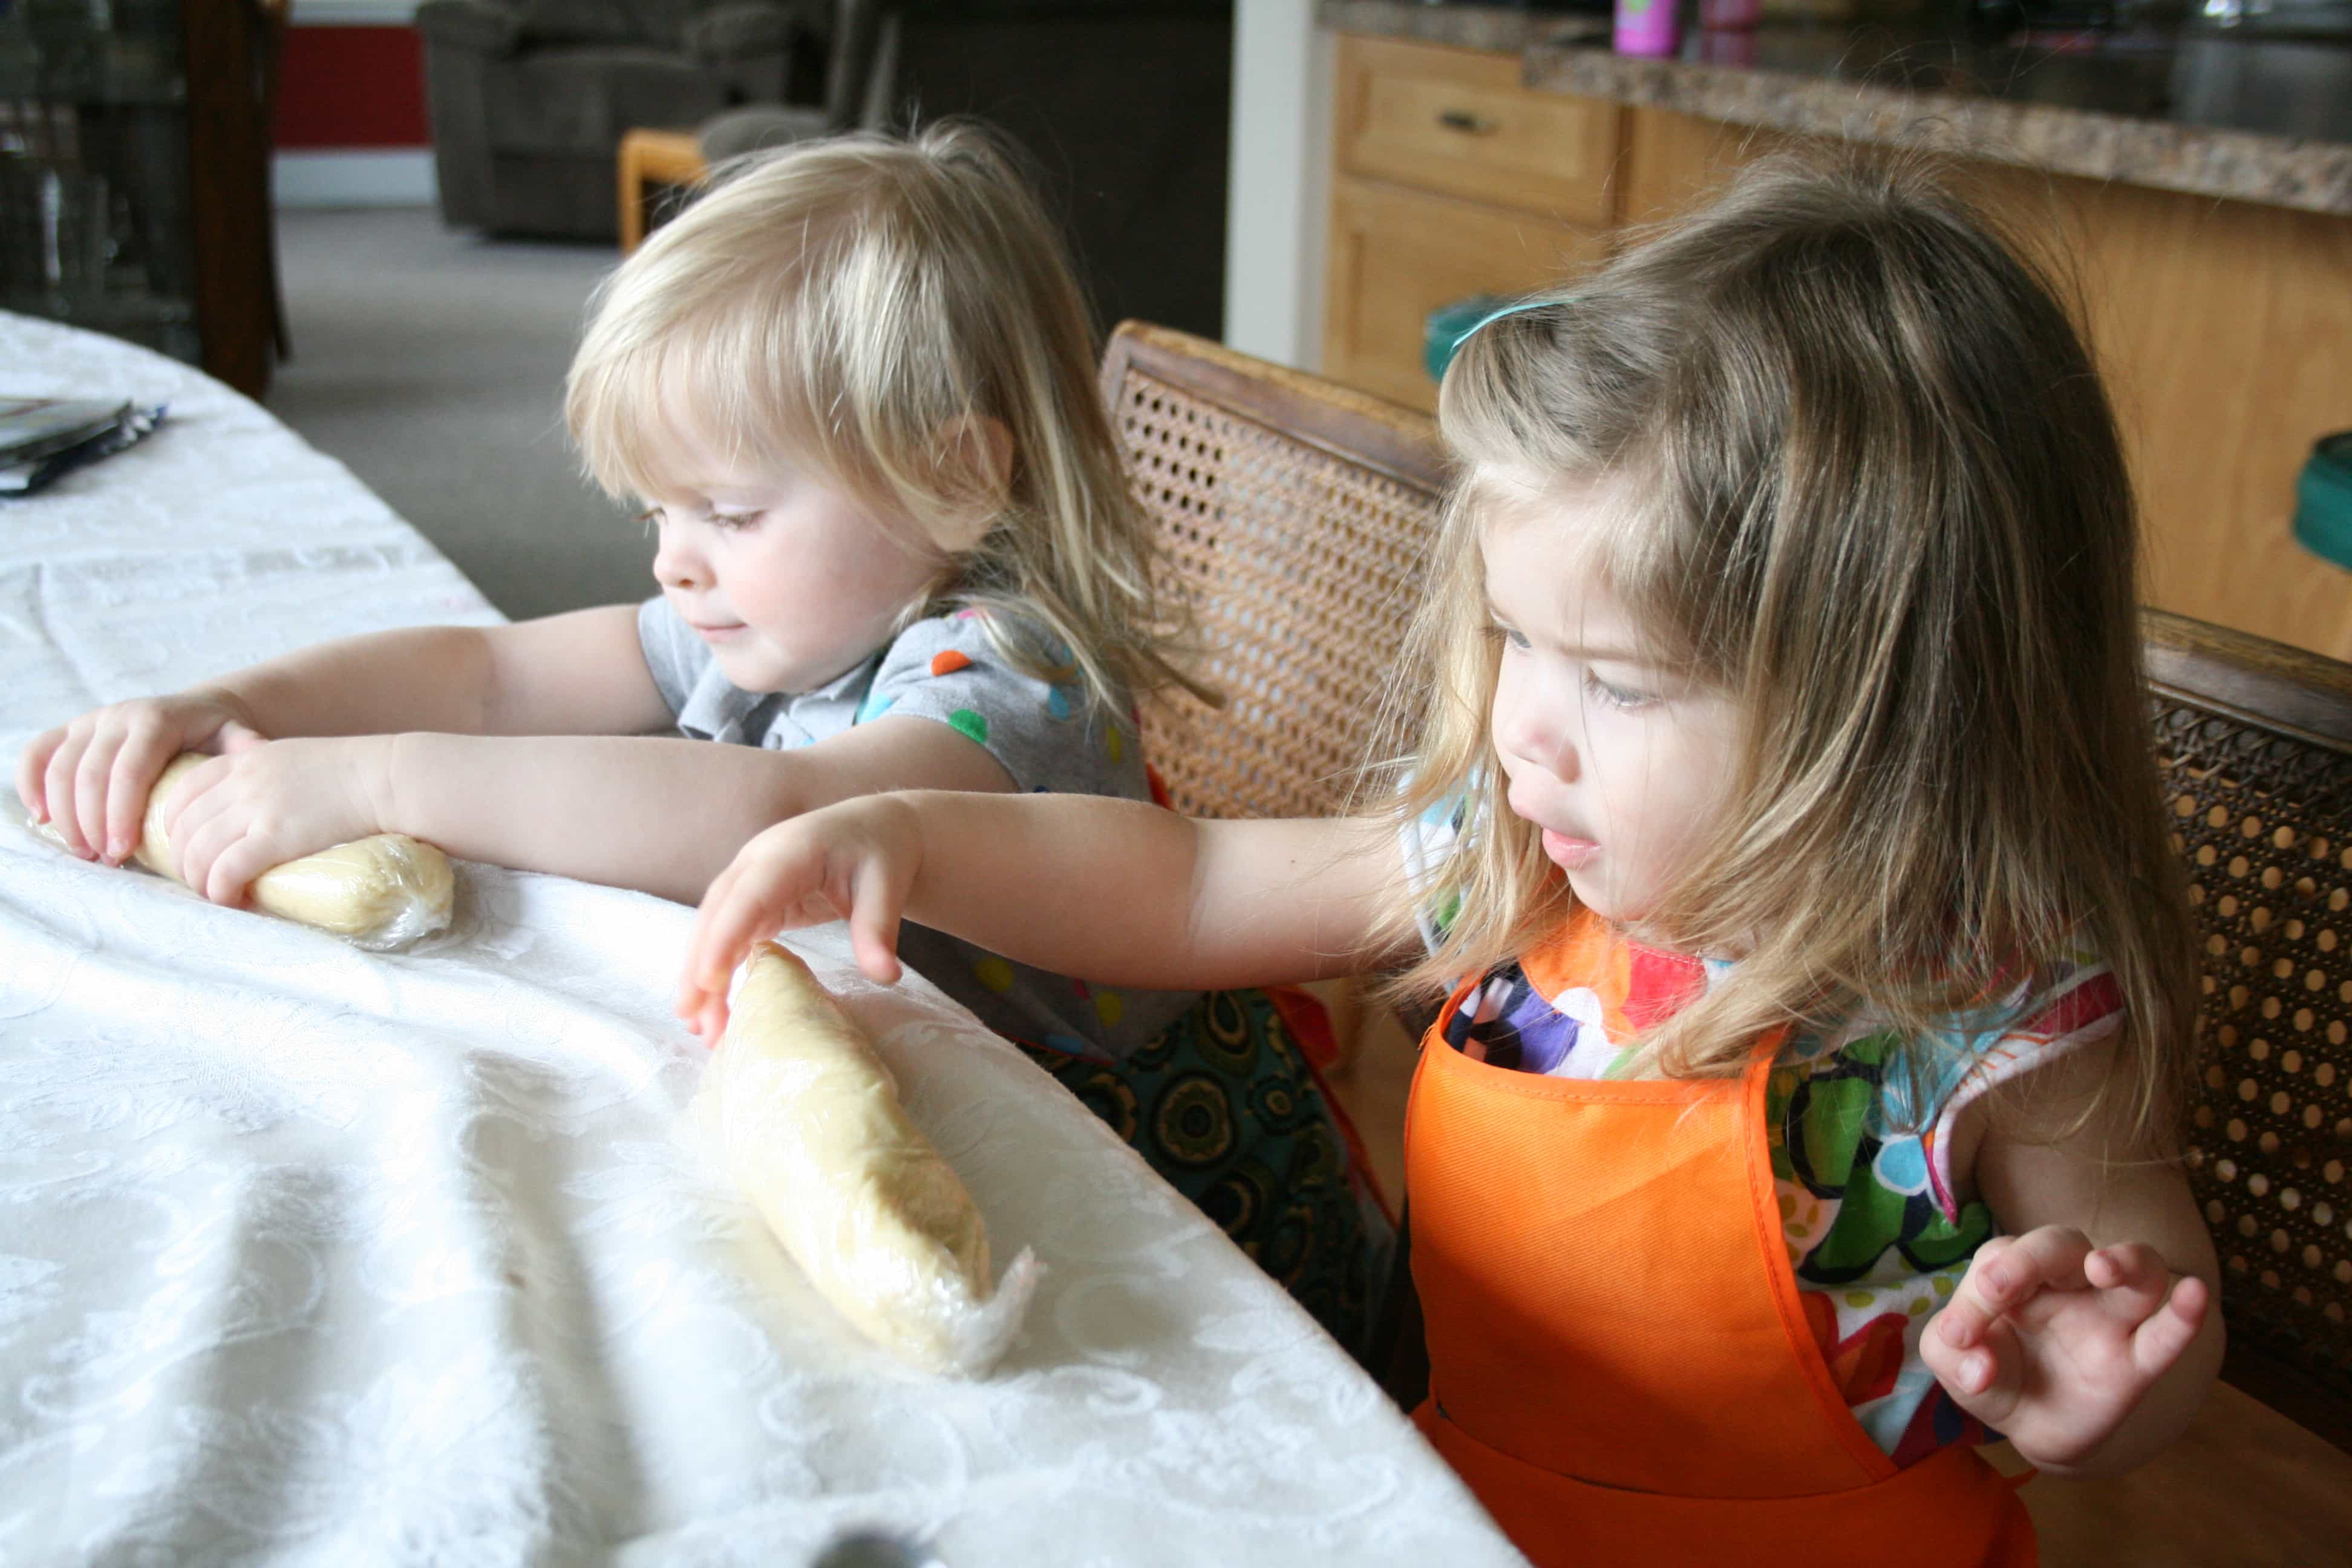 Brooke and cousin rolling up sugar cookie dough